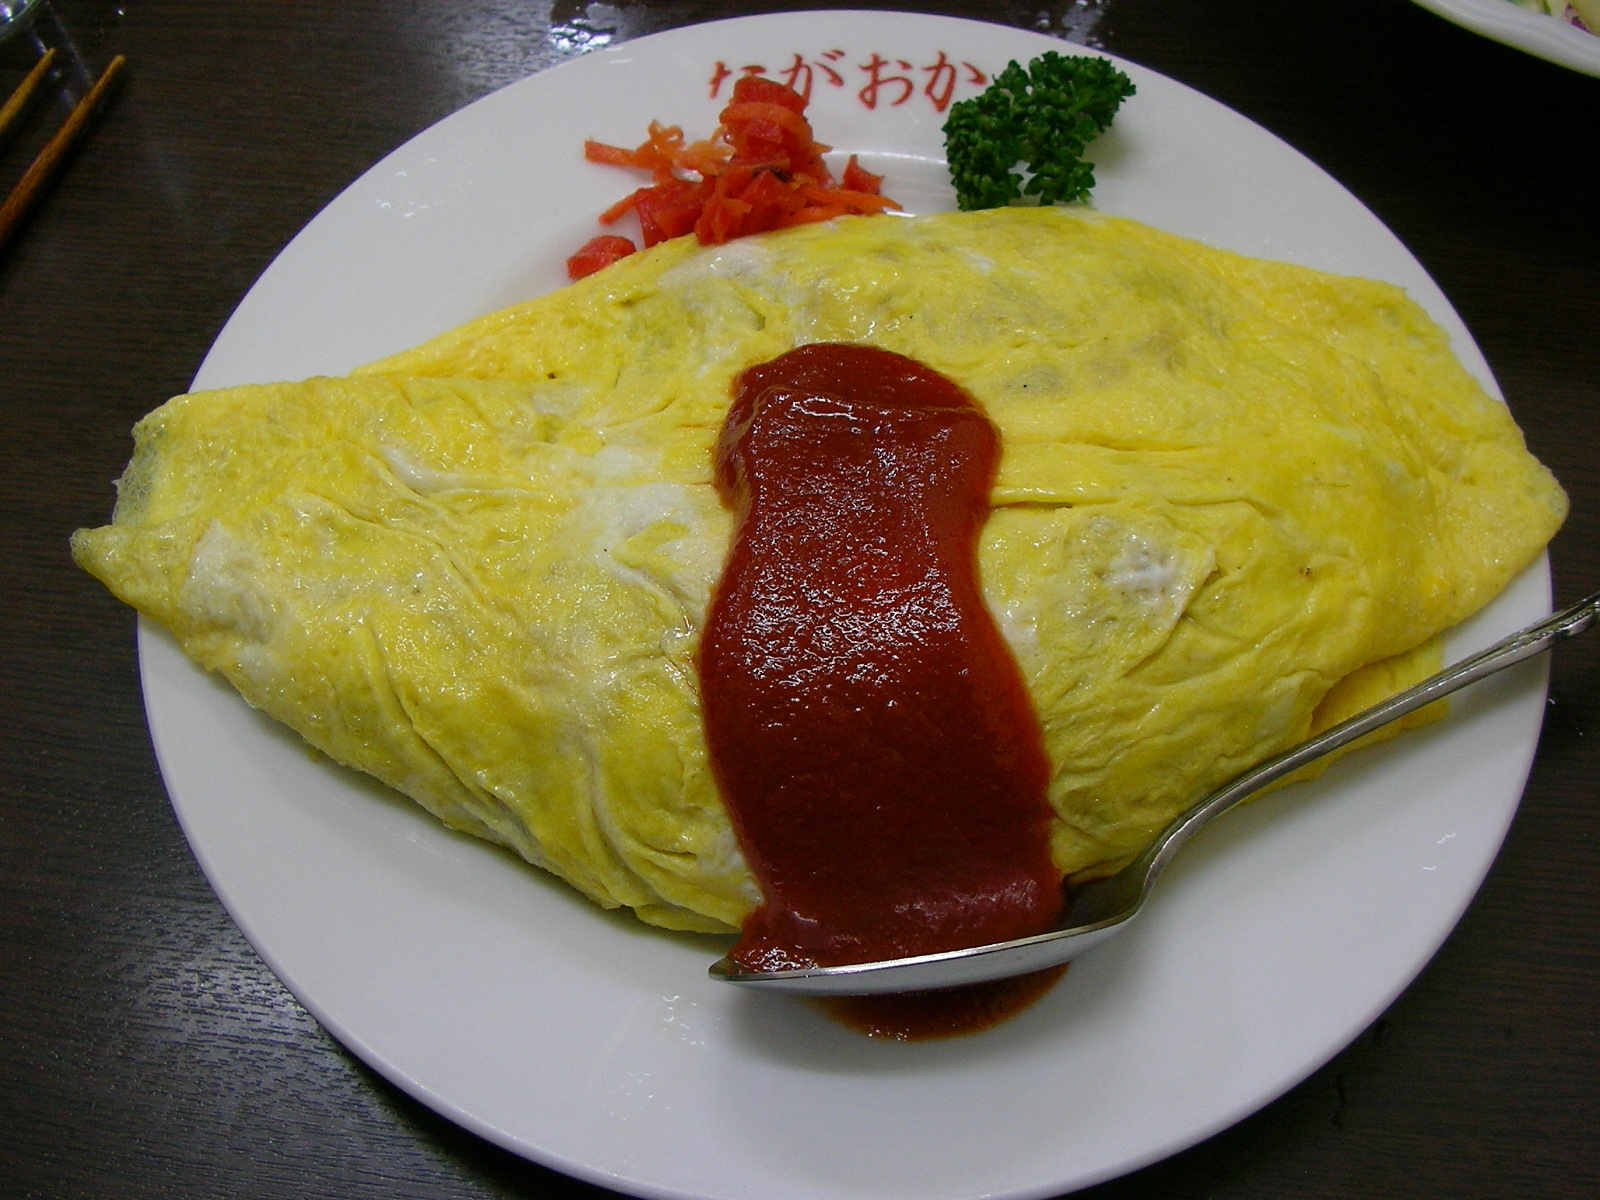 File:Omurice by jetalone in a downtown, Tokyo.jpg - Wikimedia Commons